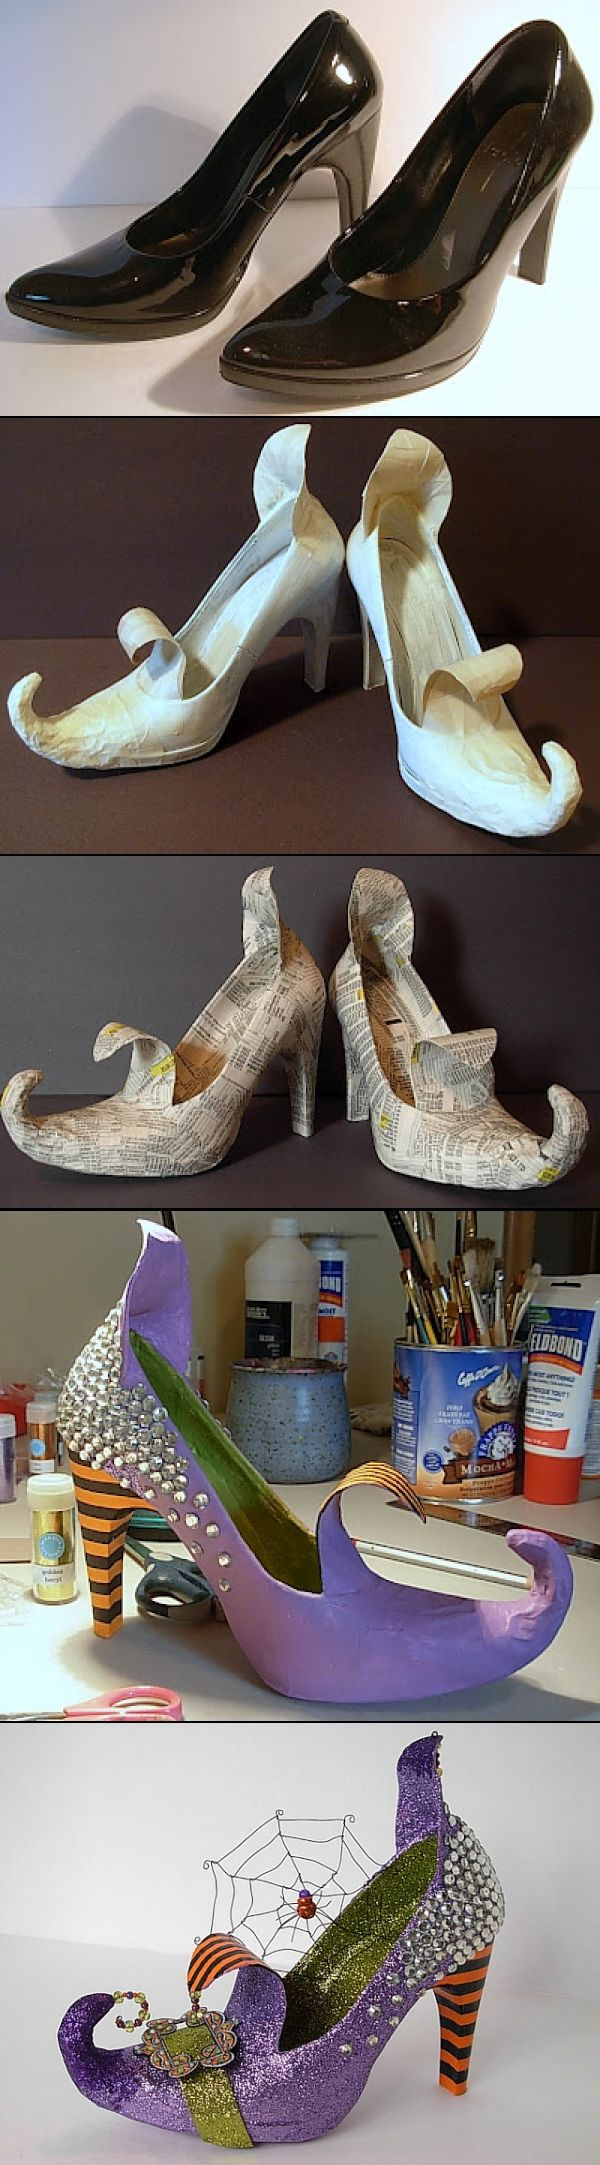 Maybe I should get crafty, since Meredith has awesome shoes for her costume!